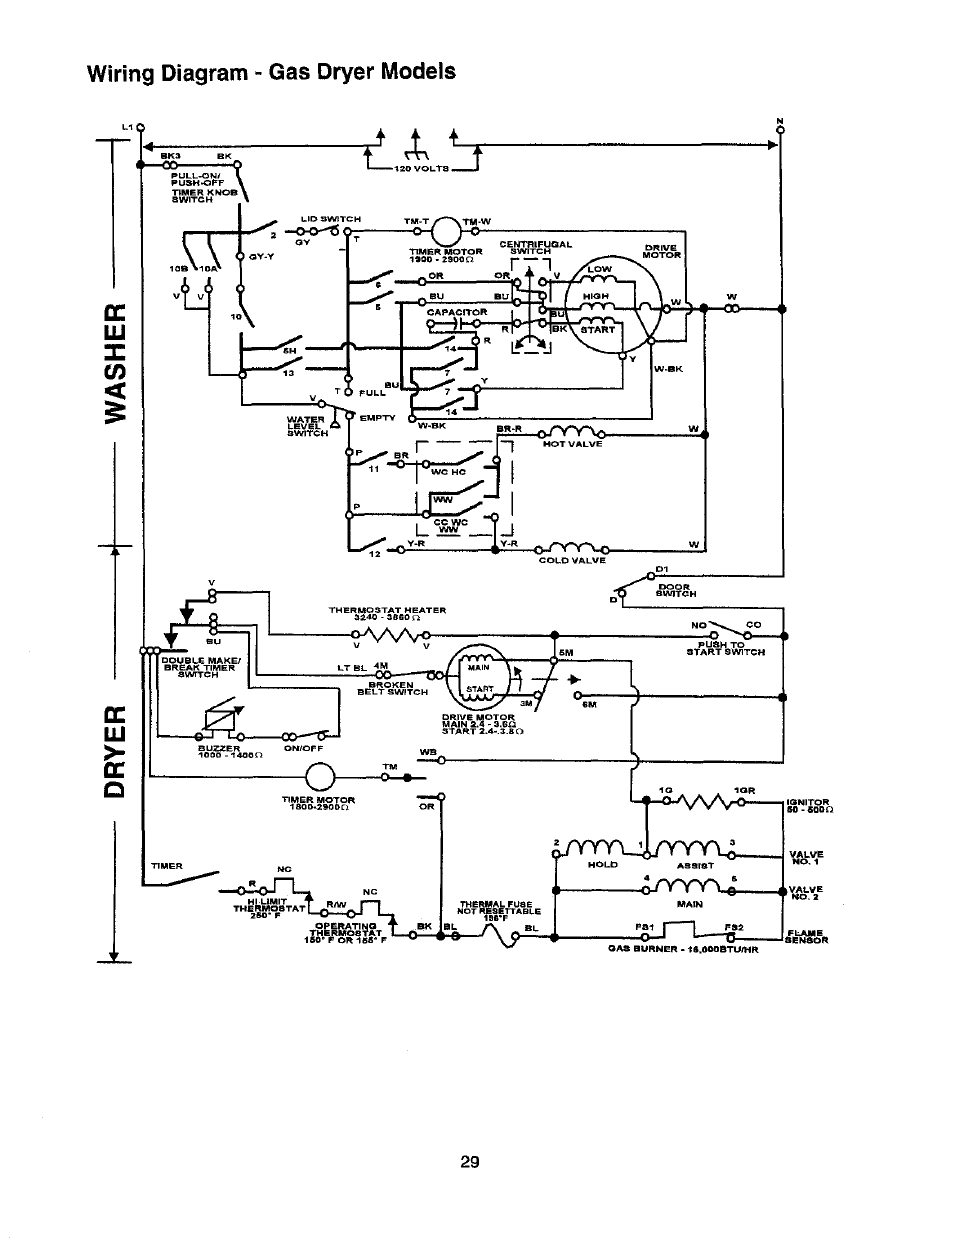 whirlpool thin twin page36 wiring diagram gas dryer models whirlpool thin twin user whirlpool thin twin wiring diagram at soozxer.org